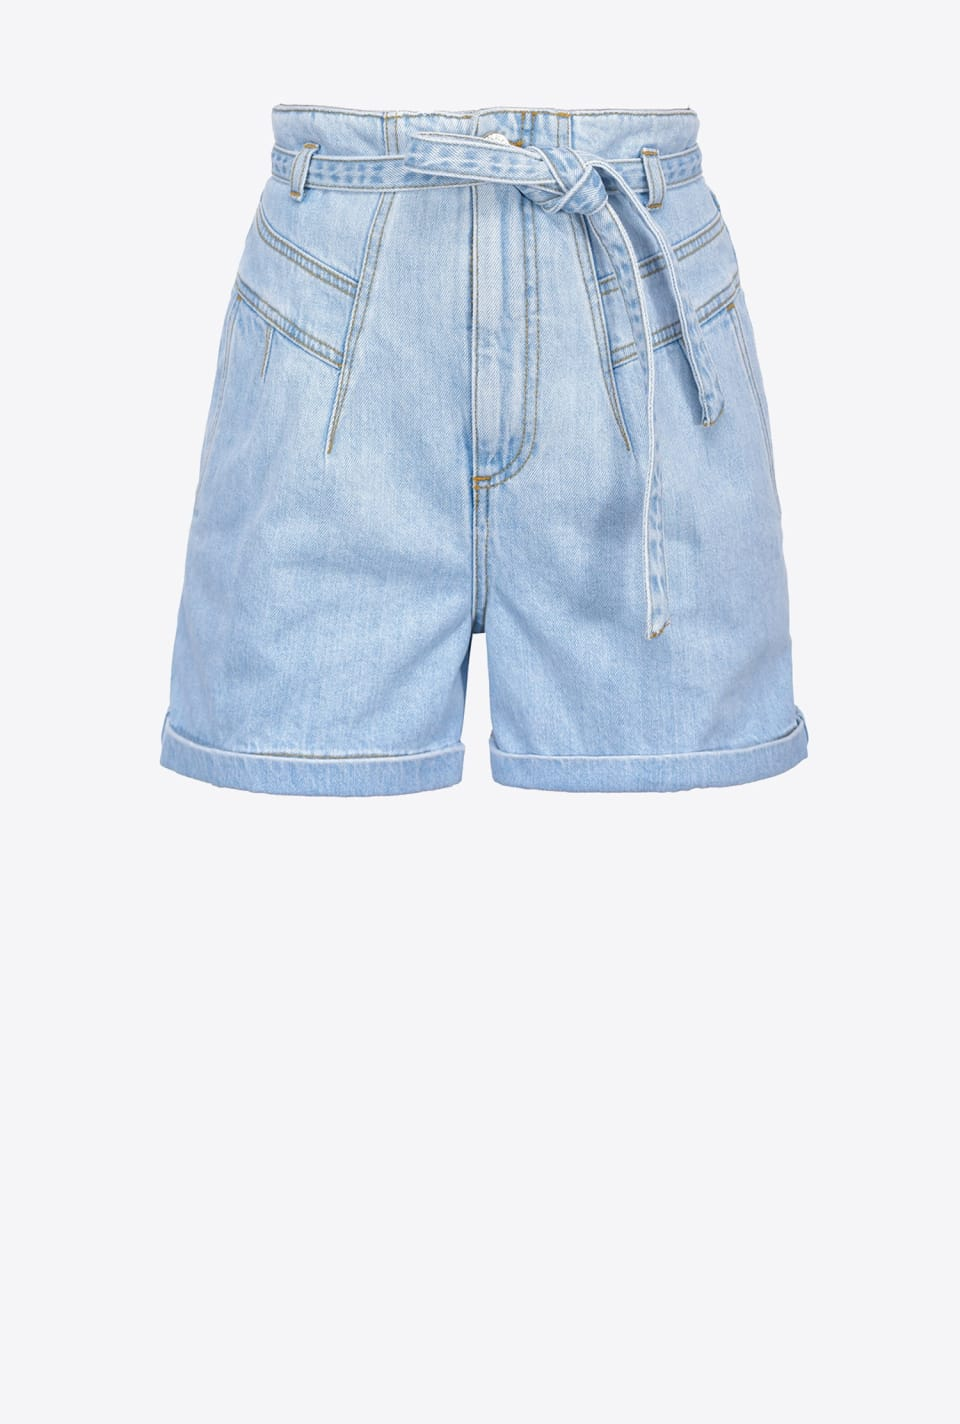 Shorts in vintage denim - Pinko